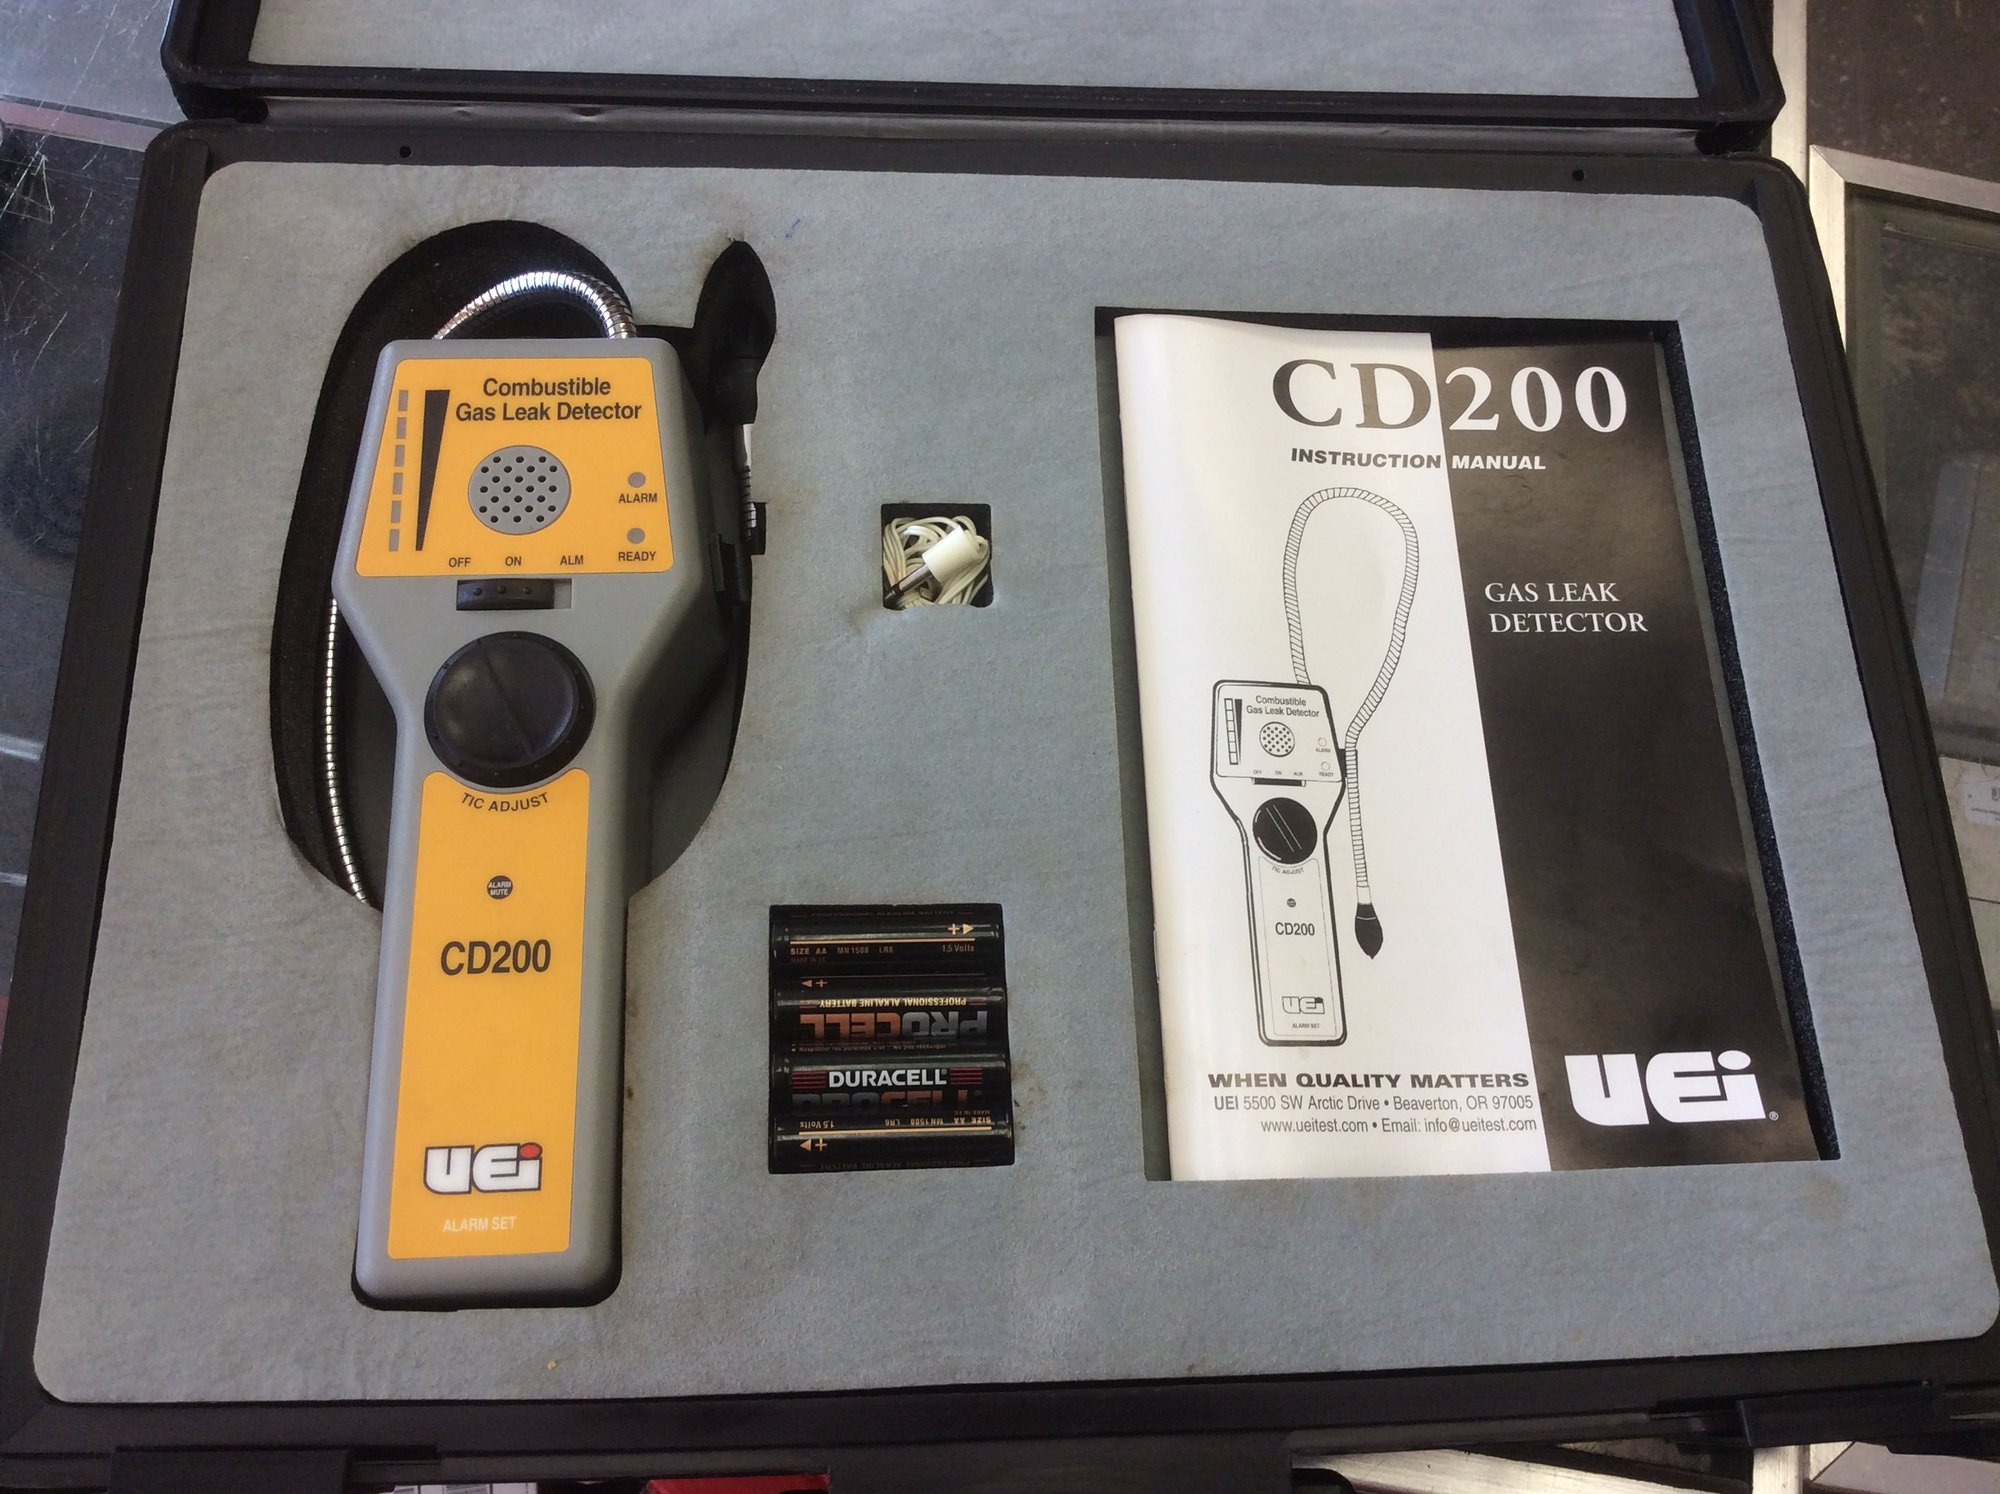 UEi Test Instruments CD200 Combustible Gas Leak Detector<br /> <br /> *PICK UP ONLY*